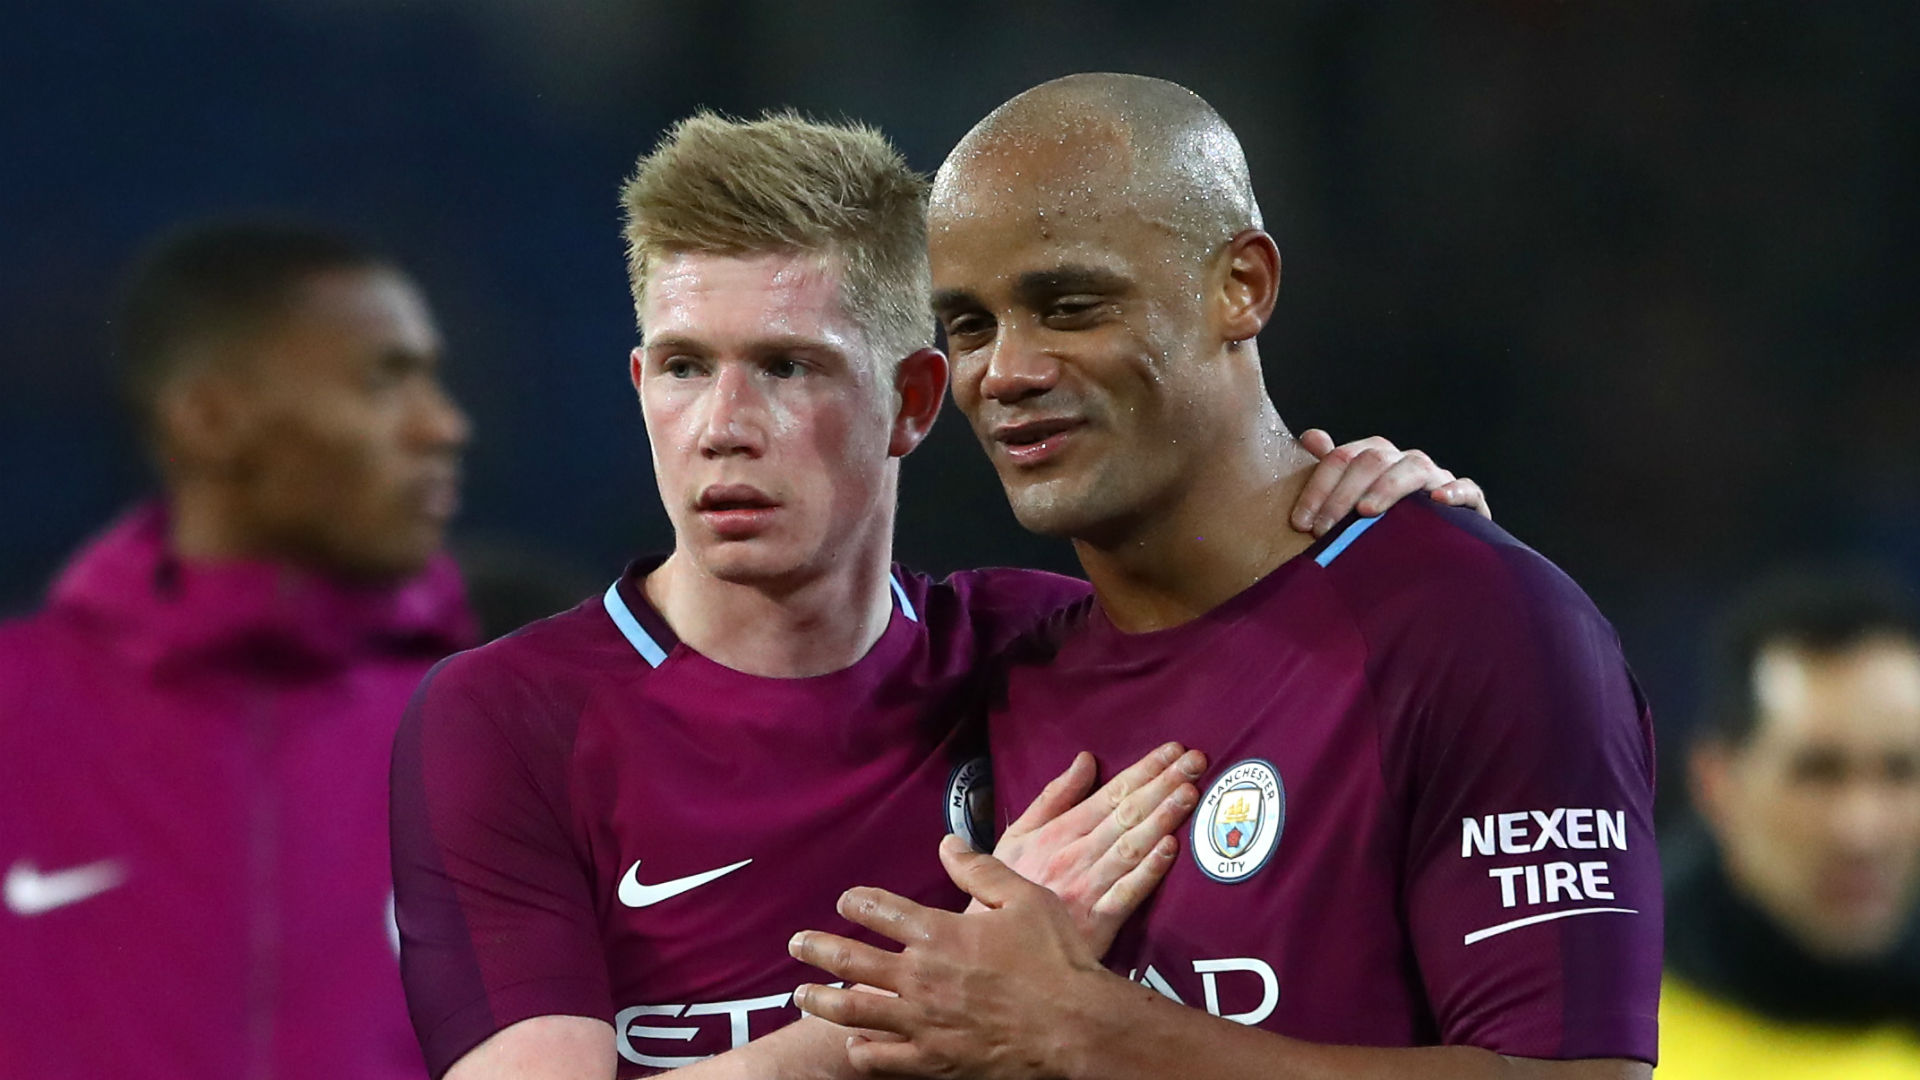 Man City Get Chance For Revenge At Wigan In FA Cup